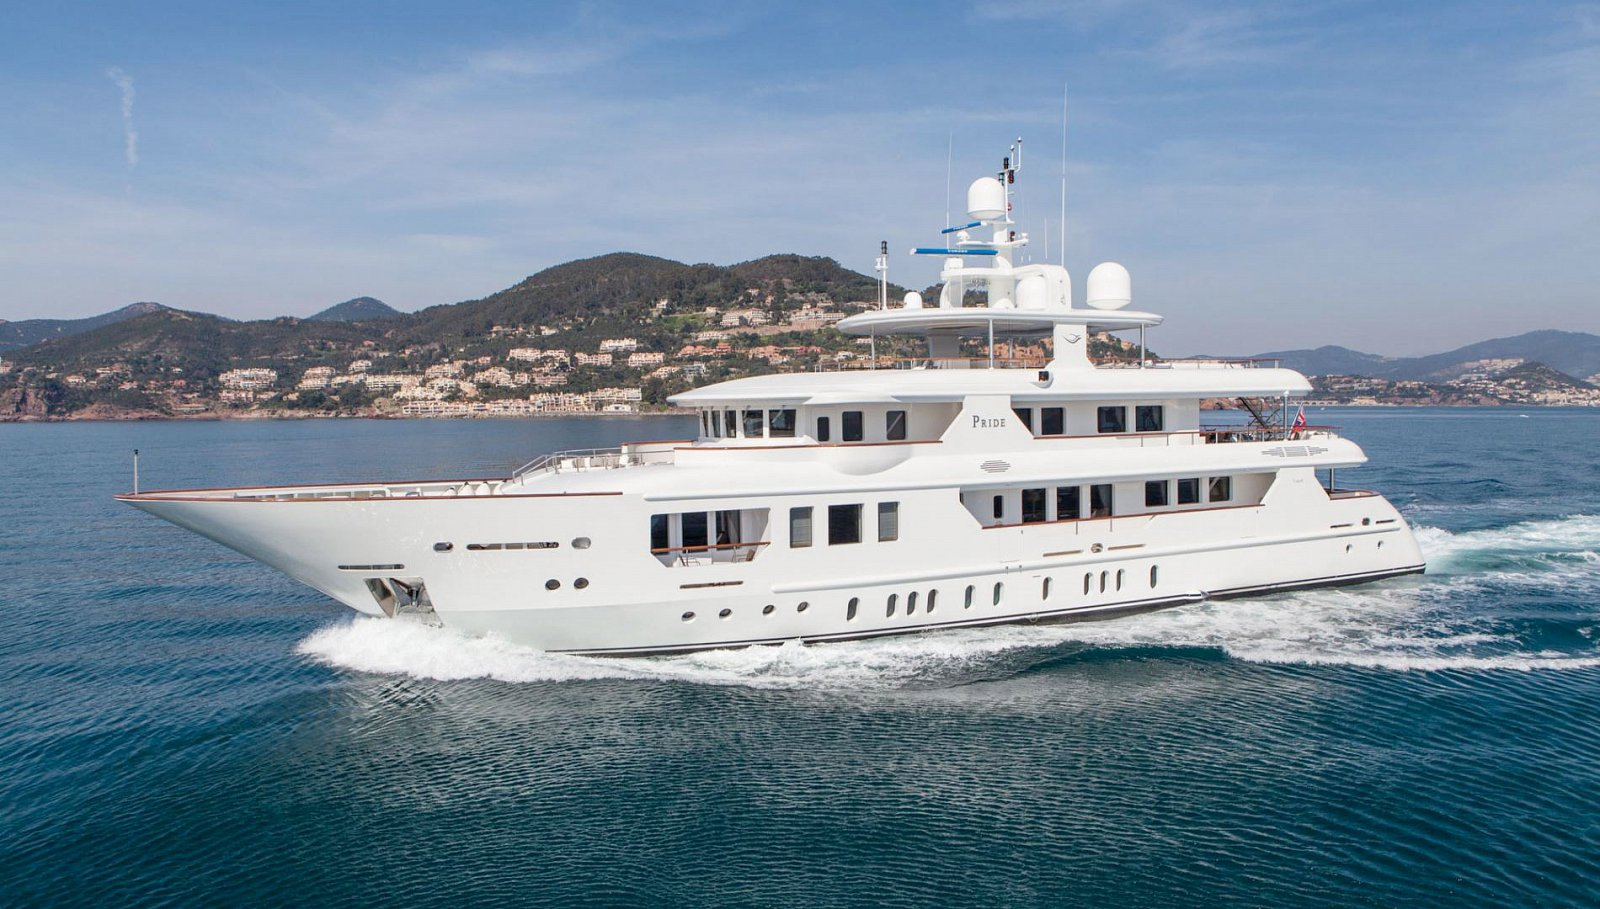 Motor yacht PRIDE - Built by Viudes Yachts